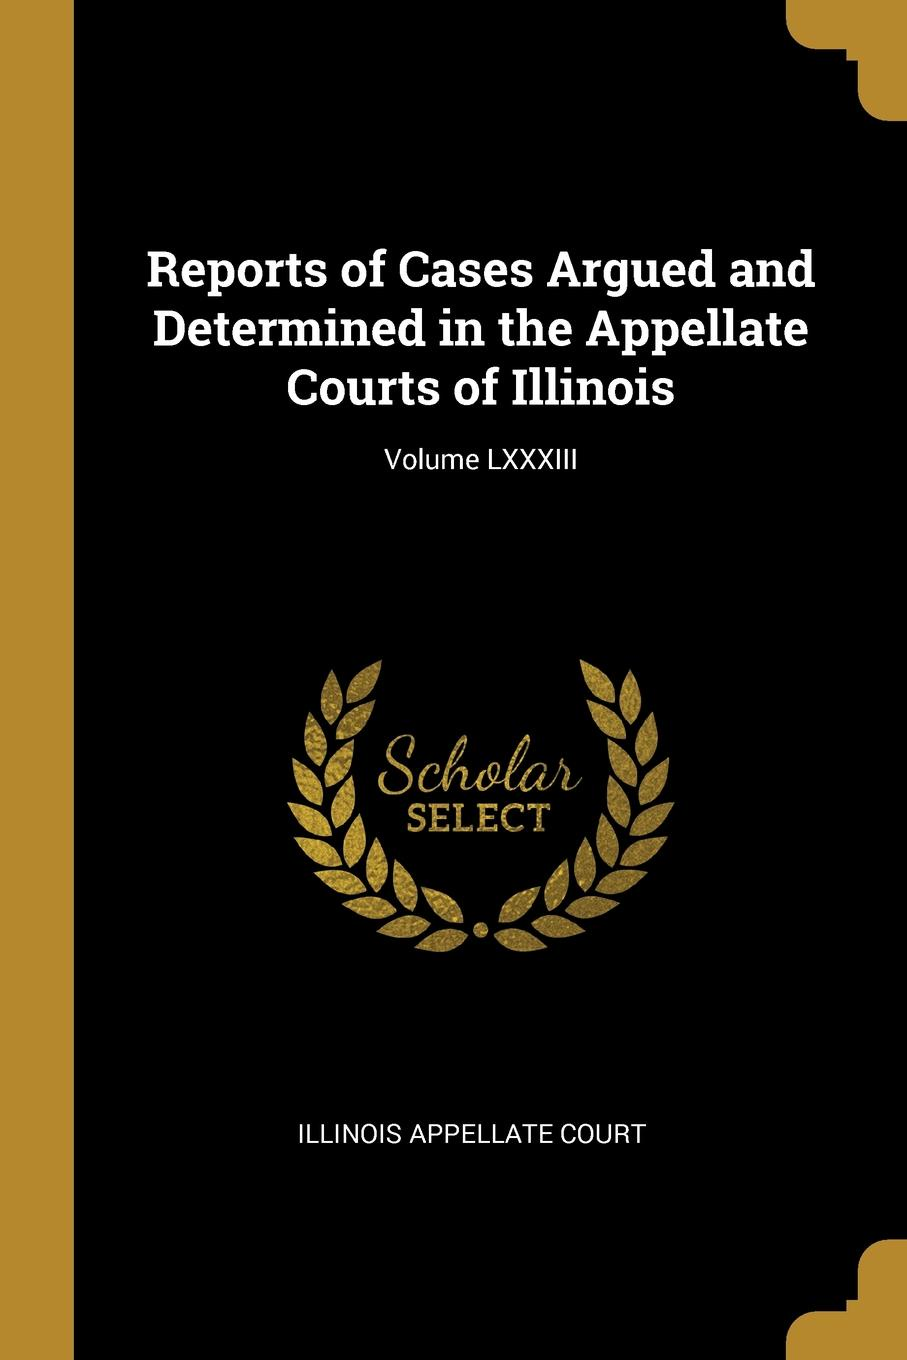 Illinois Appellate Court Reports of Cases Argued and Determined in the Appellate Courts of Illinois; Volume LXXXIII